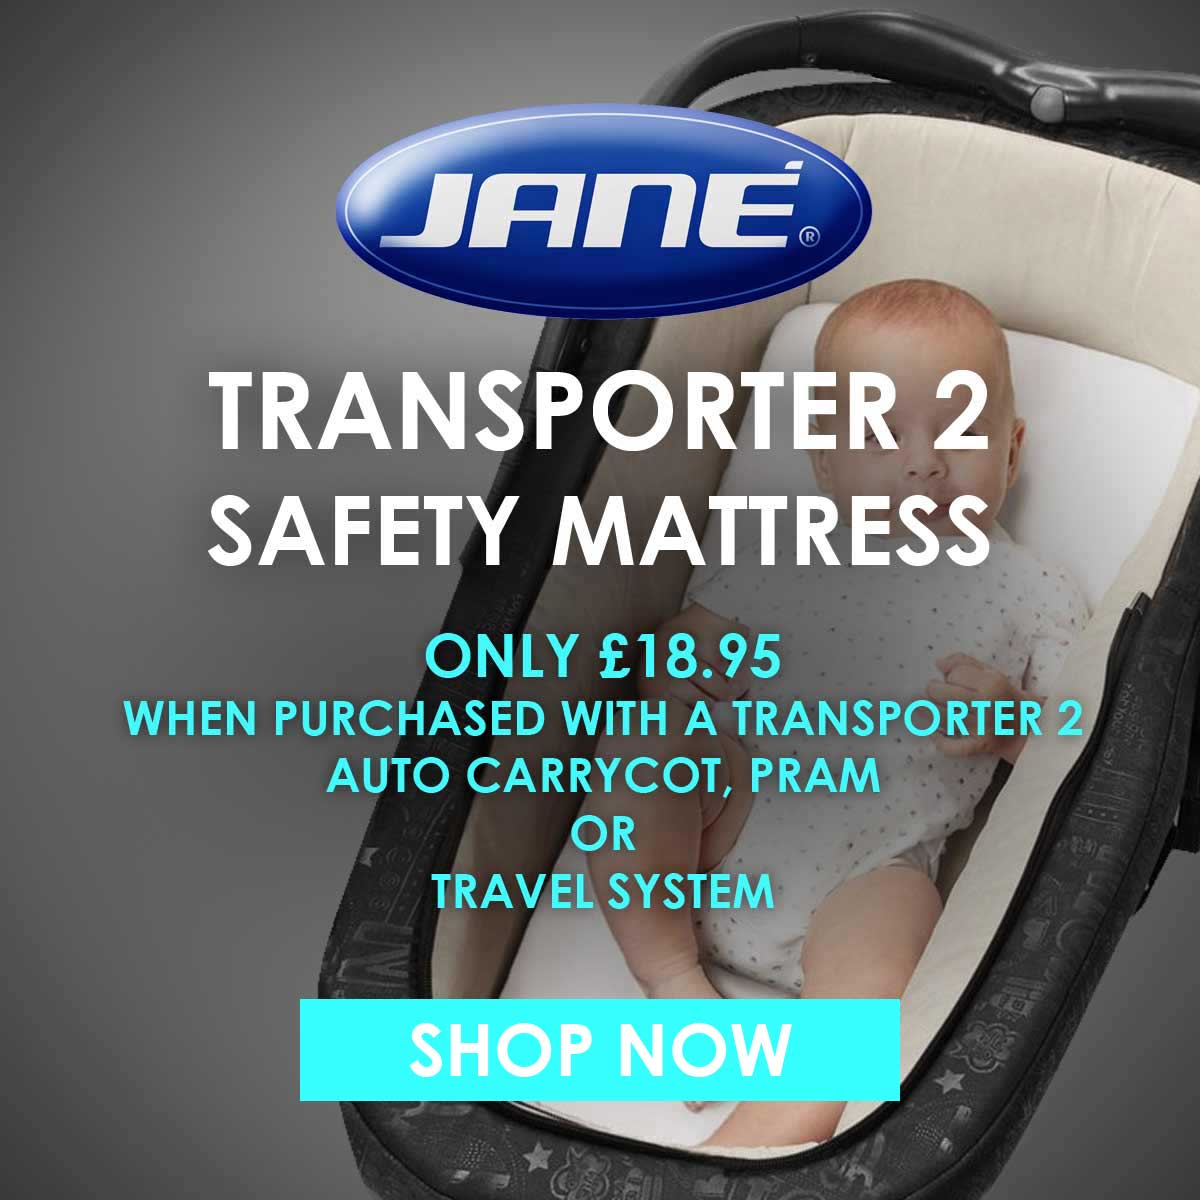 Jane Safety Mattress for Transporter 2 Basket Offer